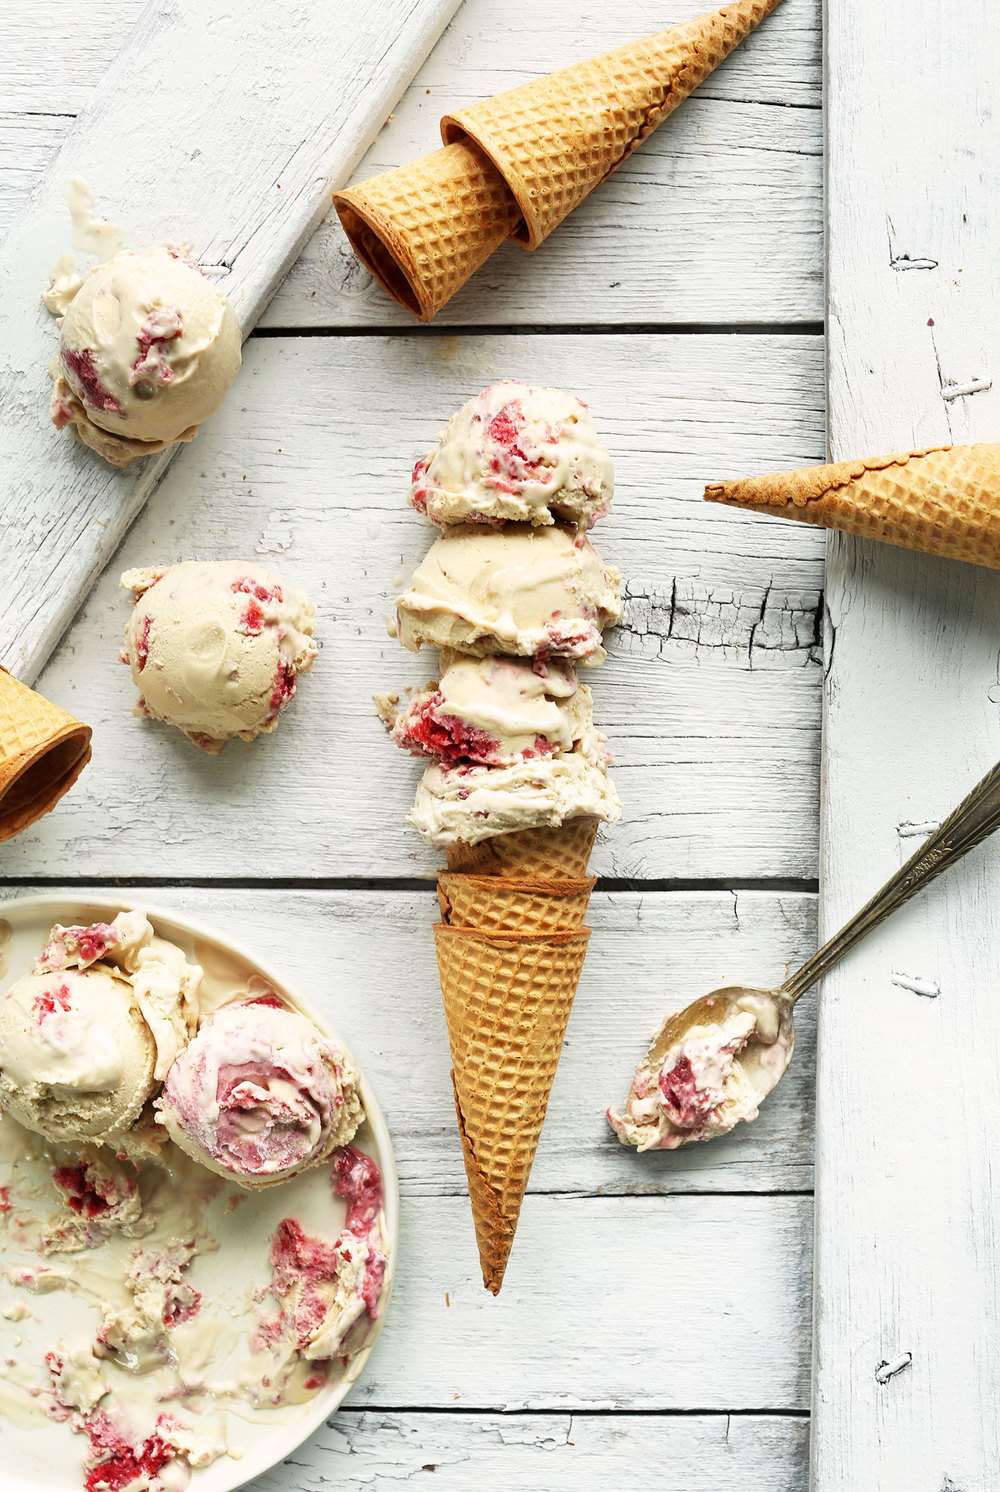 RASPBERRY-SWIRL-Coconut-Ice-Cream-Creamy-tart-sweet-and-SO-delicious-vegan-glutenfree-recipe-icecream-raspberry-dessert.jpg